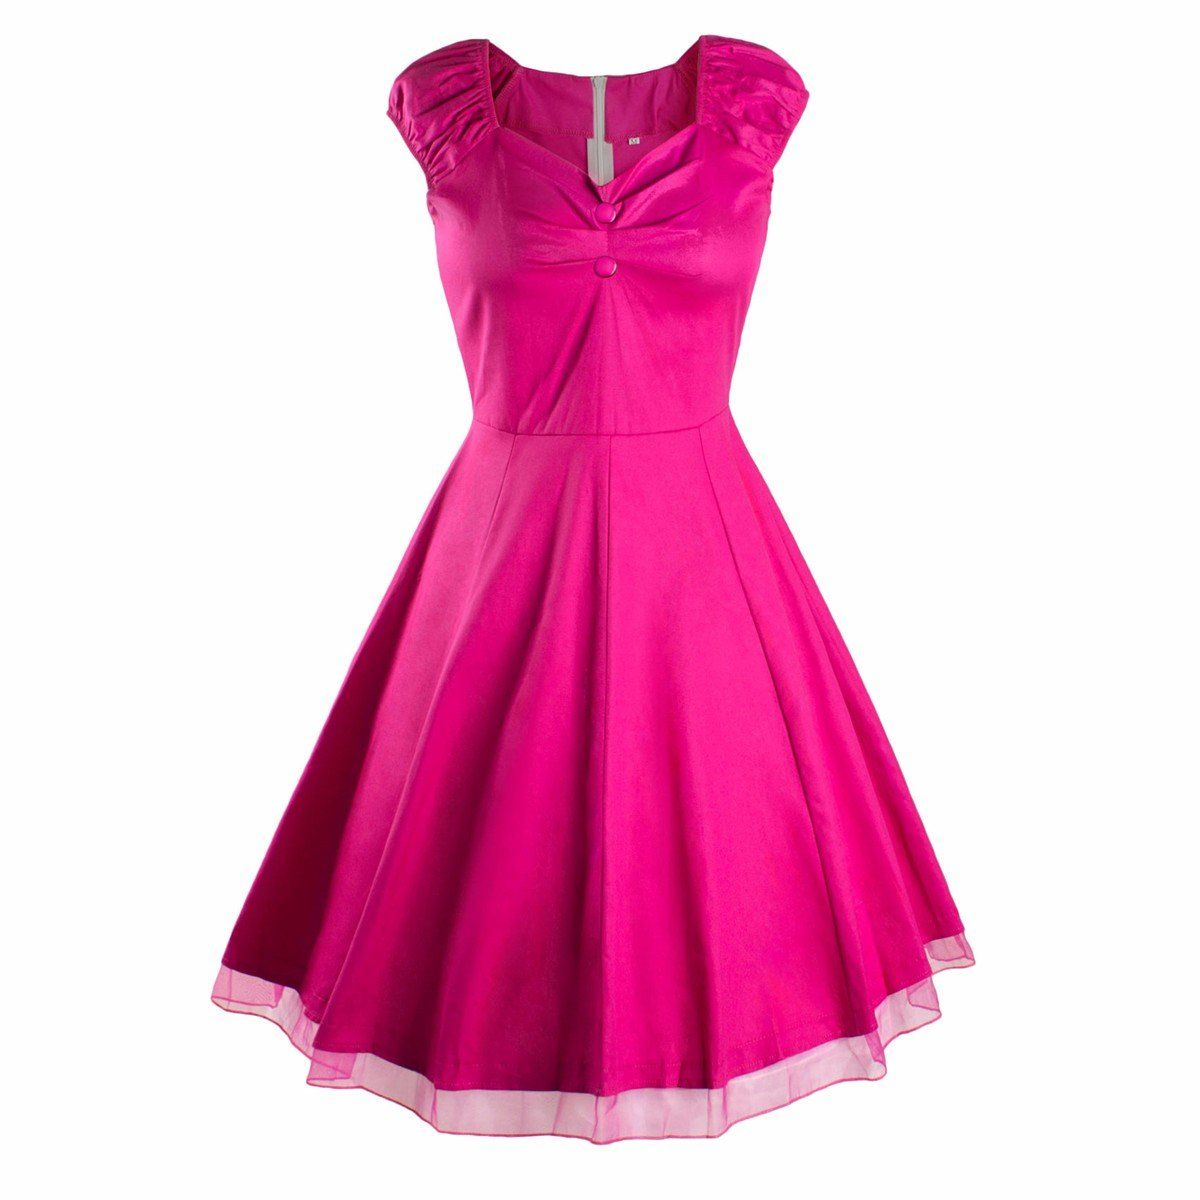 Samtree Womens 1950s Style Vintage Swing Rockabilly Picnic Party ...